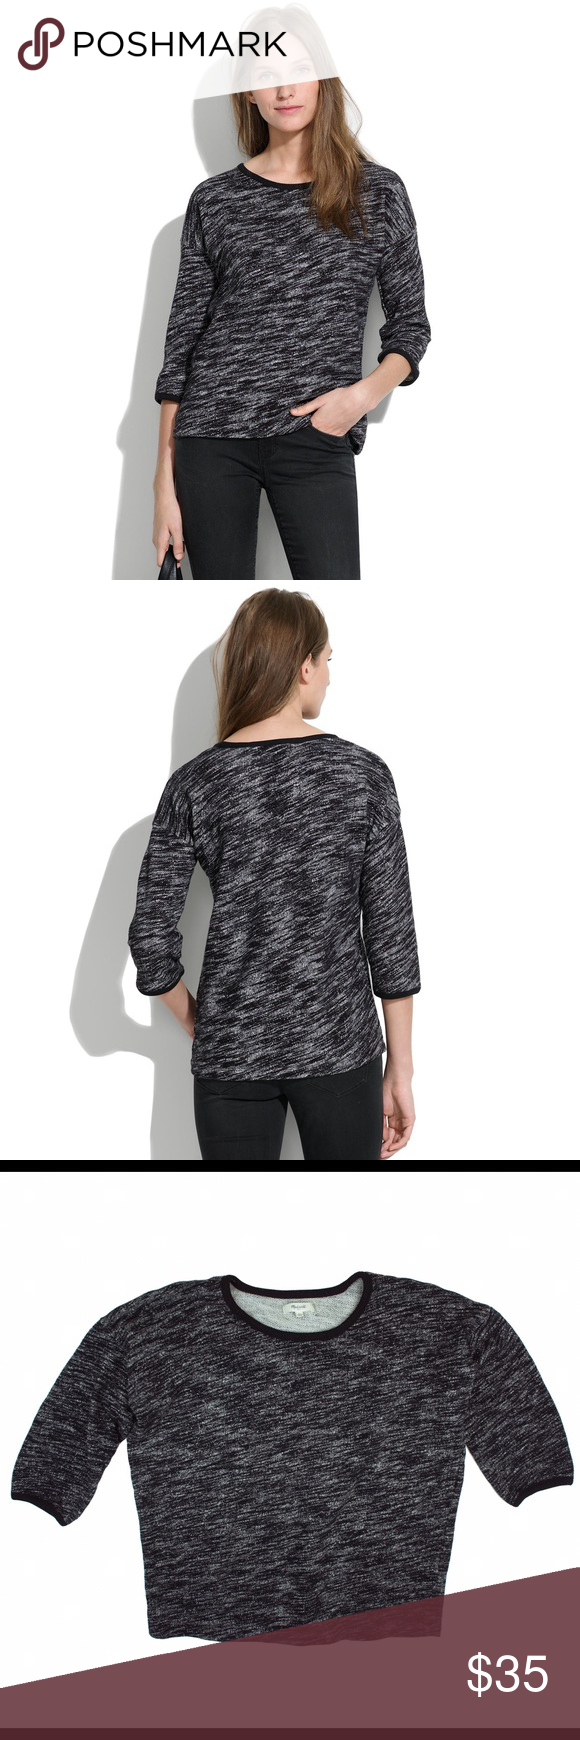 """MADEWELL Black Marled Shadetree Pullover Shirt Top Excellent condition! This black marled shadetree pullover from MADEWELL features a relaxed fit, crew neck and is made of a French terry cotton. 3/4 length sleeves. 100% cotton. Measures: bust: 44"""", total length: 24"""", sleeves: 16"""" Madewell Tops Sweatshirts & Hoodies"""